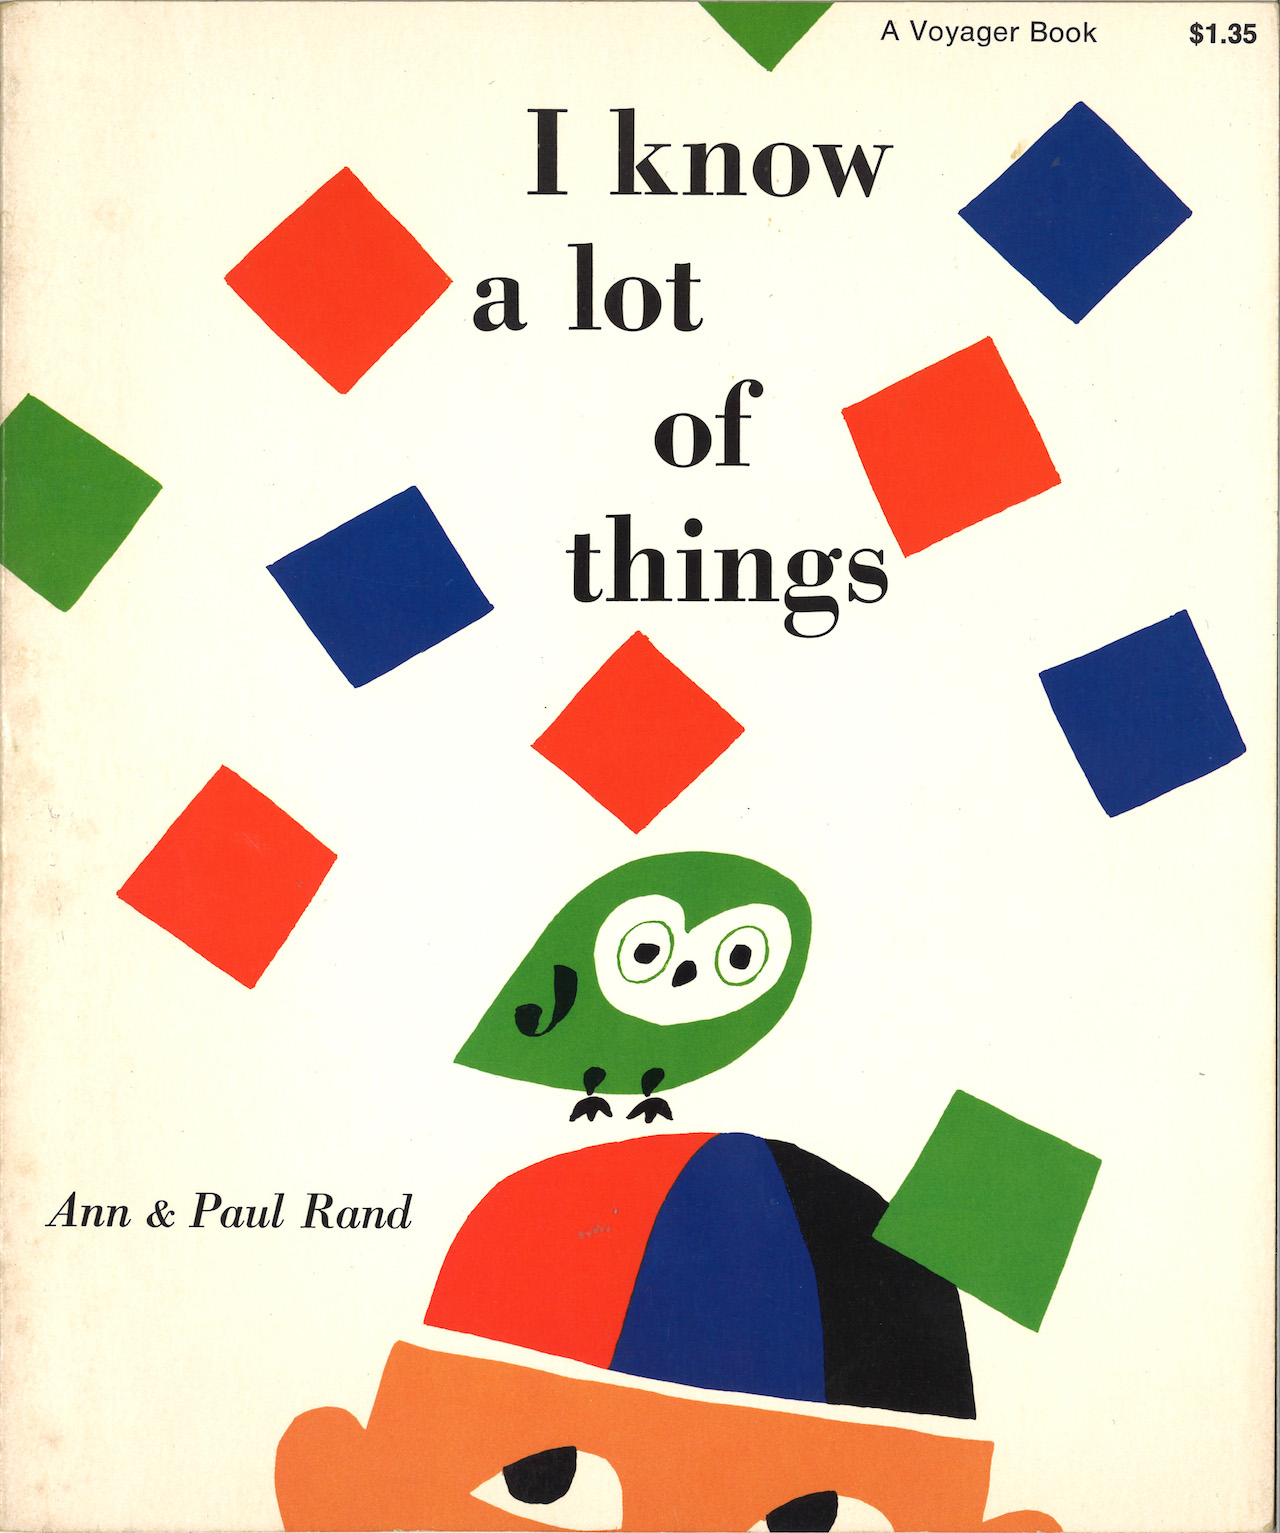 3232_Everything is Design_Paul Rand_Courtesy of Museum of City of NYI Know A Lot of Things, book designed by Paul Rand and written by Ann Rand1956book Private CollectionI Know A Lot of Things, book designed by Paul Rand and written by Ann Rand.